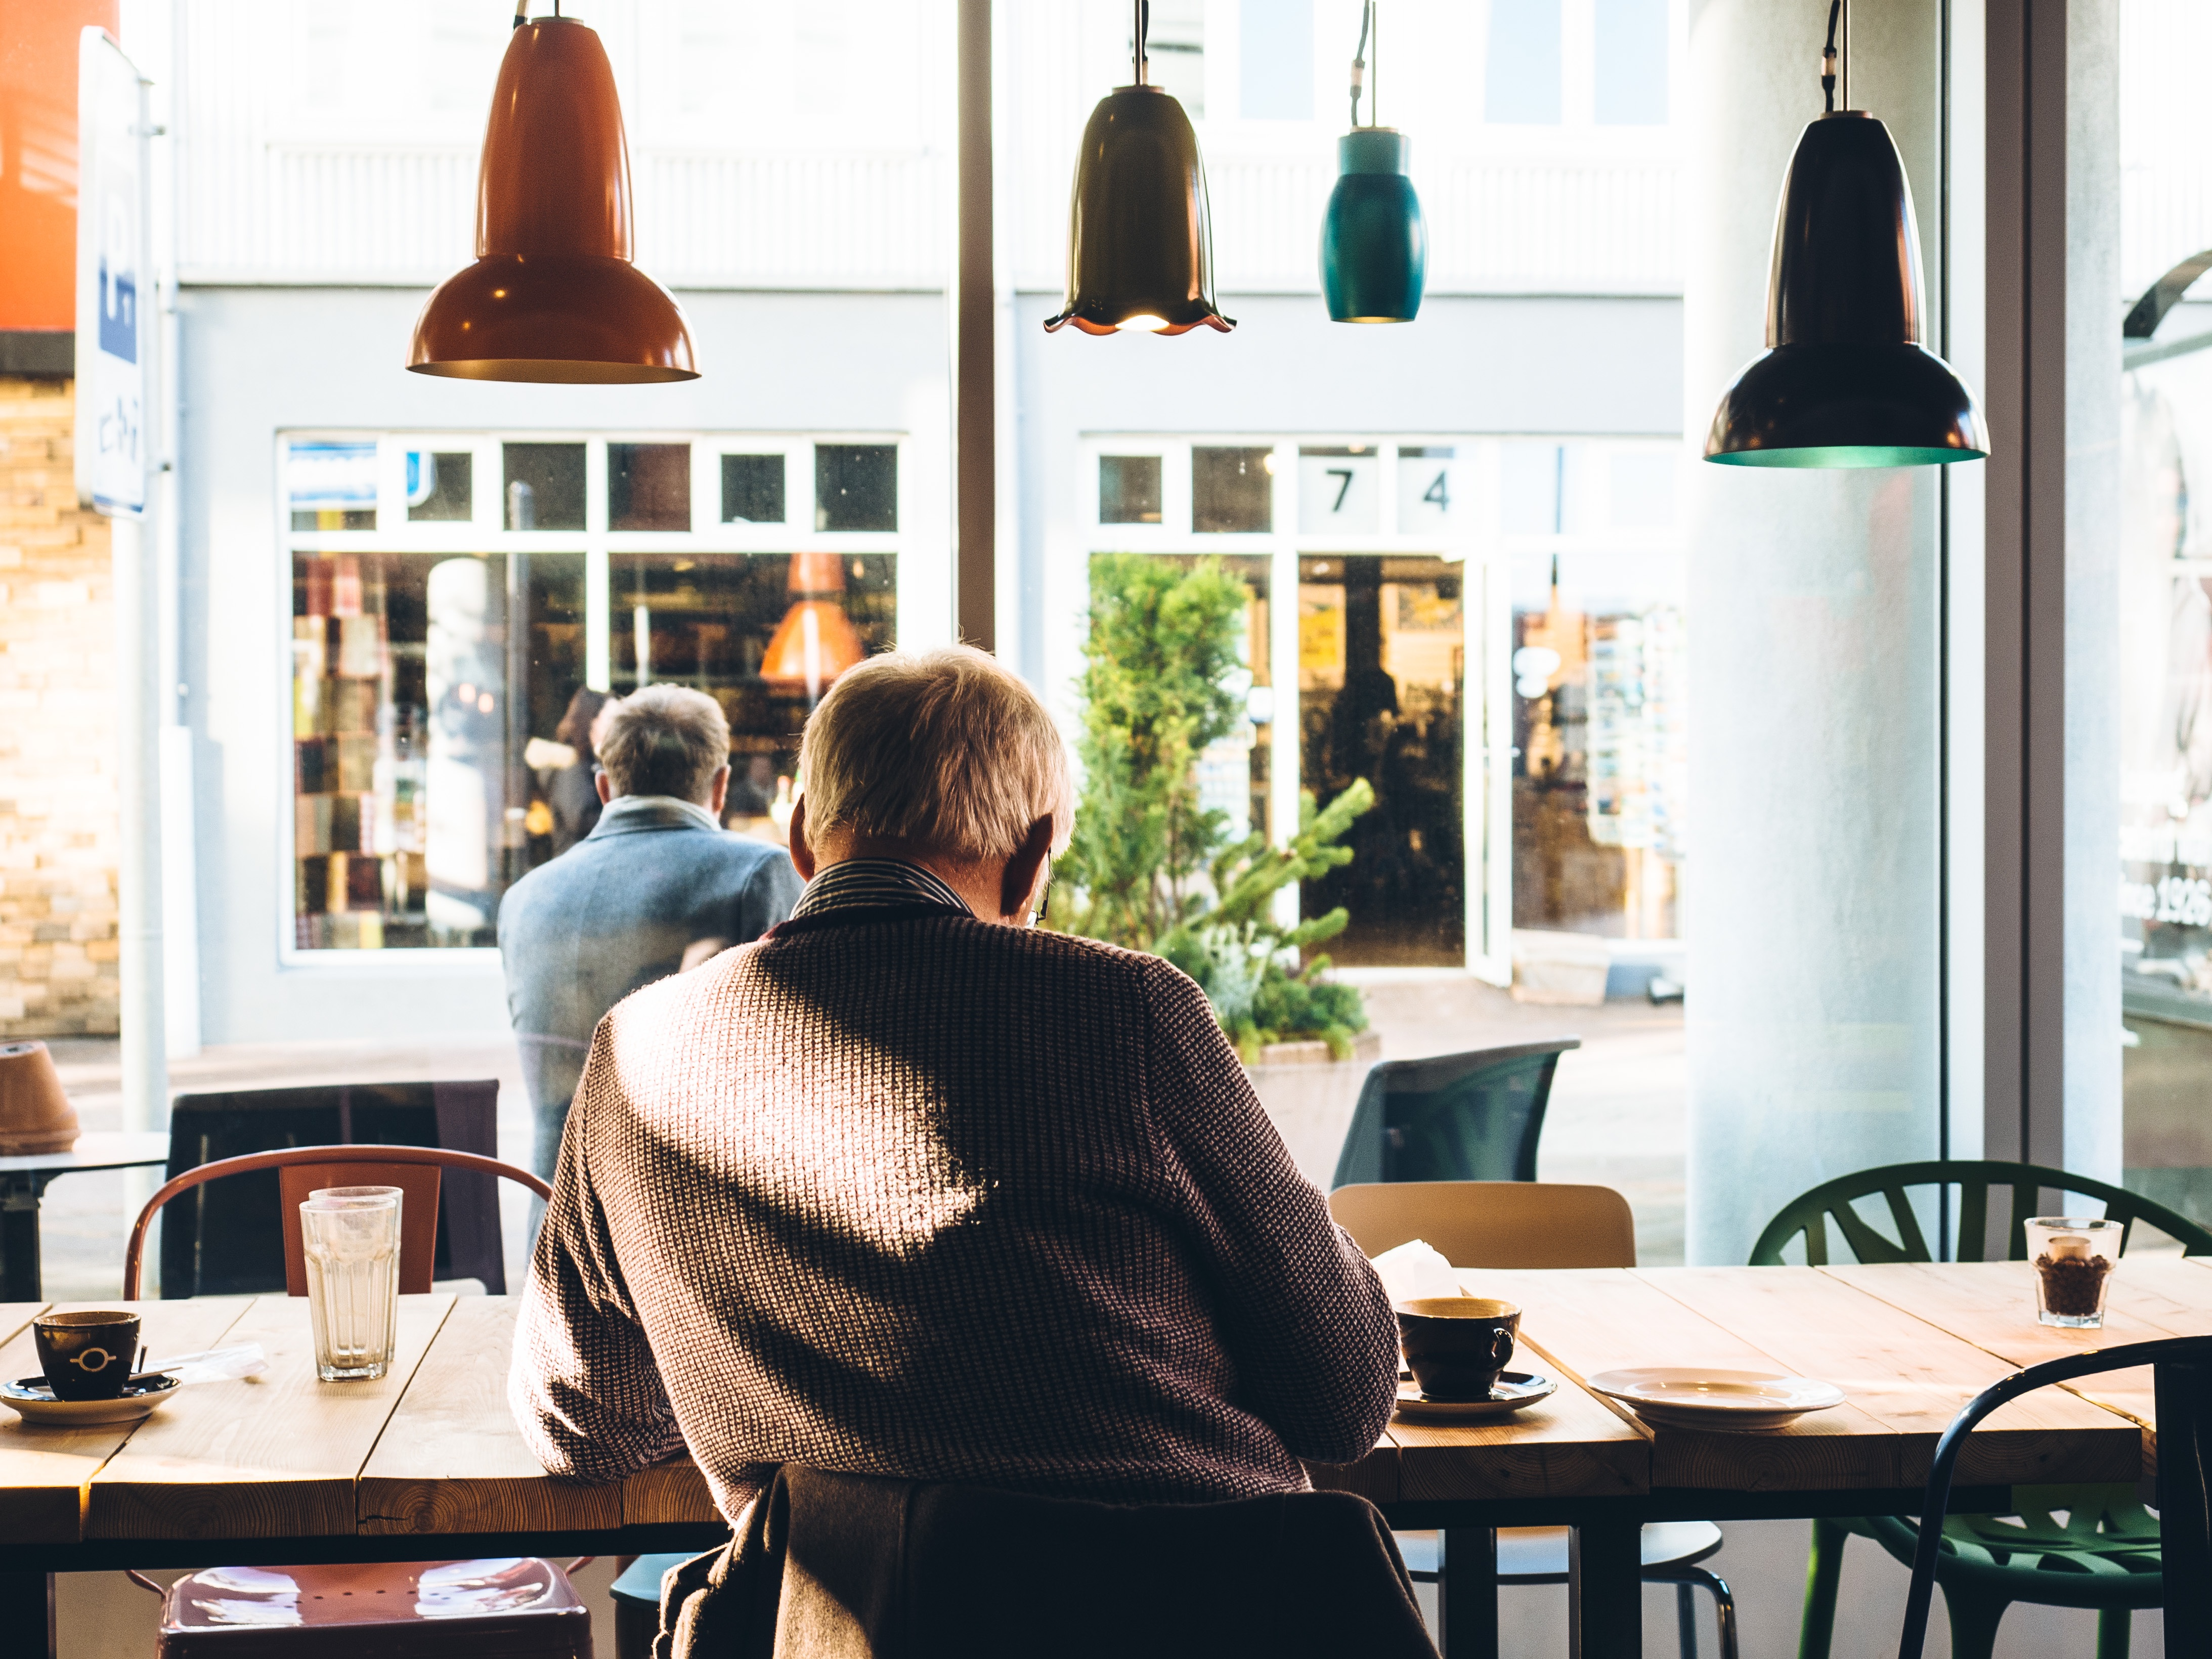 Man sitting in coffee shop with bad posture